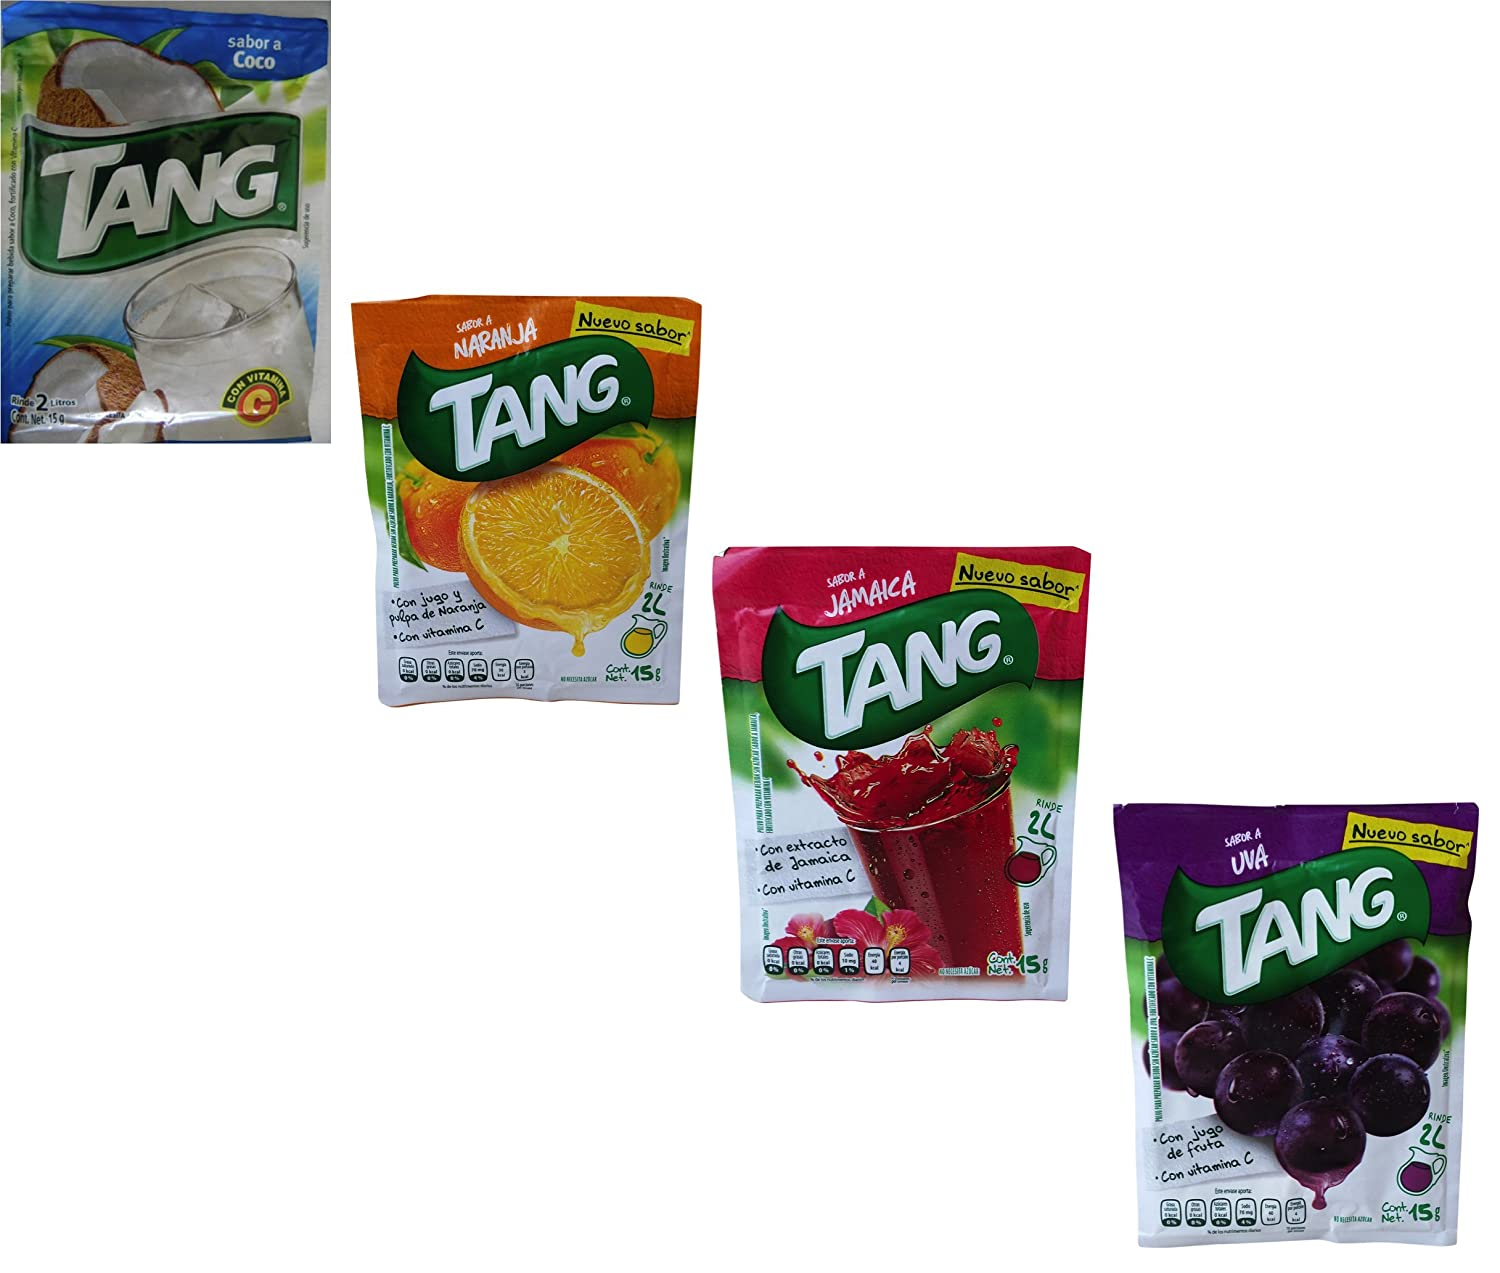 Amazon.com : Tang Powdered Drink Mix, Packets Make 2 Liters (Pack of 24) Grape, Hibiscus, Orange, Coconut : Powdered Soft Drink Mixes : Grocery & Gourmet ...